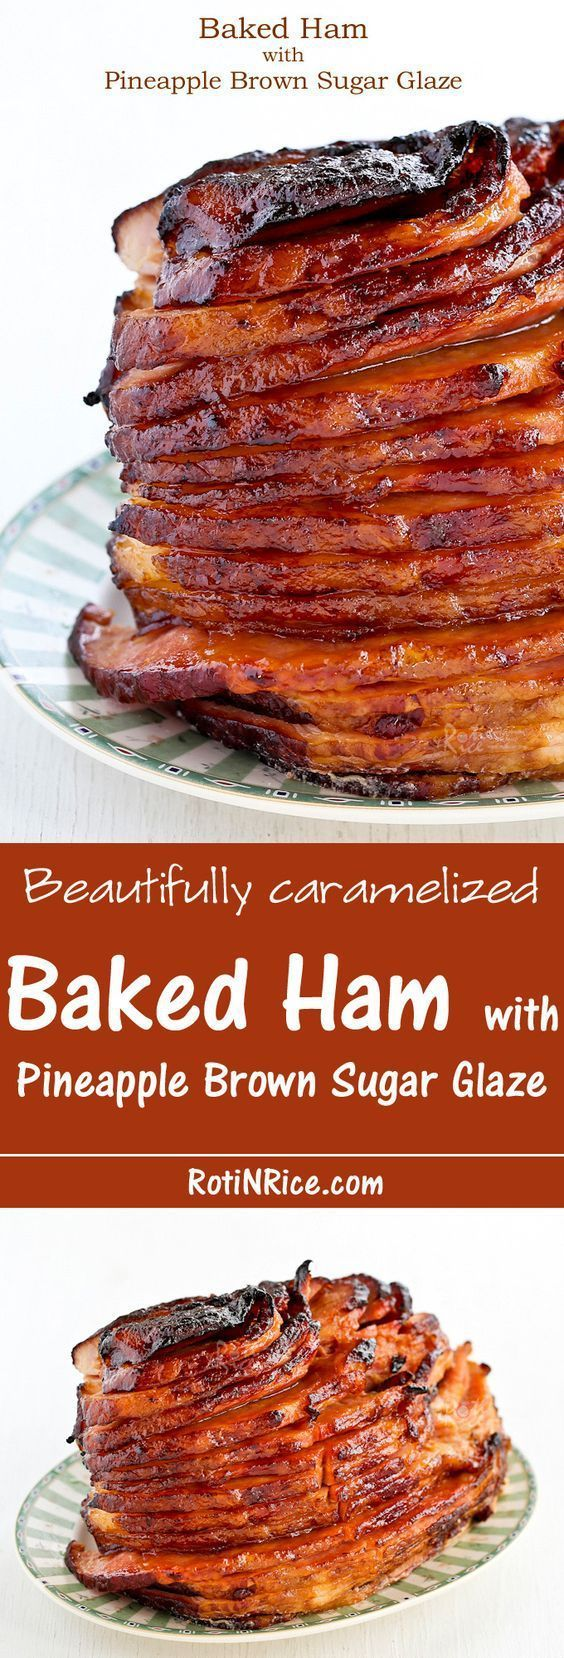 Beautifully caramelized Baked Ham with Pineapple Brown Sugar Glaze Recipe - a perfect alternative or addition to the Thanksgiving Turkey!   Roti n Rice - The BEST Classic, Improved and Traditional Thanksgiving Dinner Menu Favorites Recipes - Main Dishes, Side Dishes, Appetizers, Salads, Yummy Desserts and more!